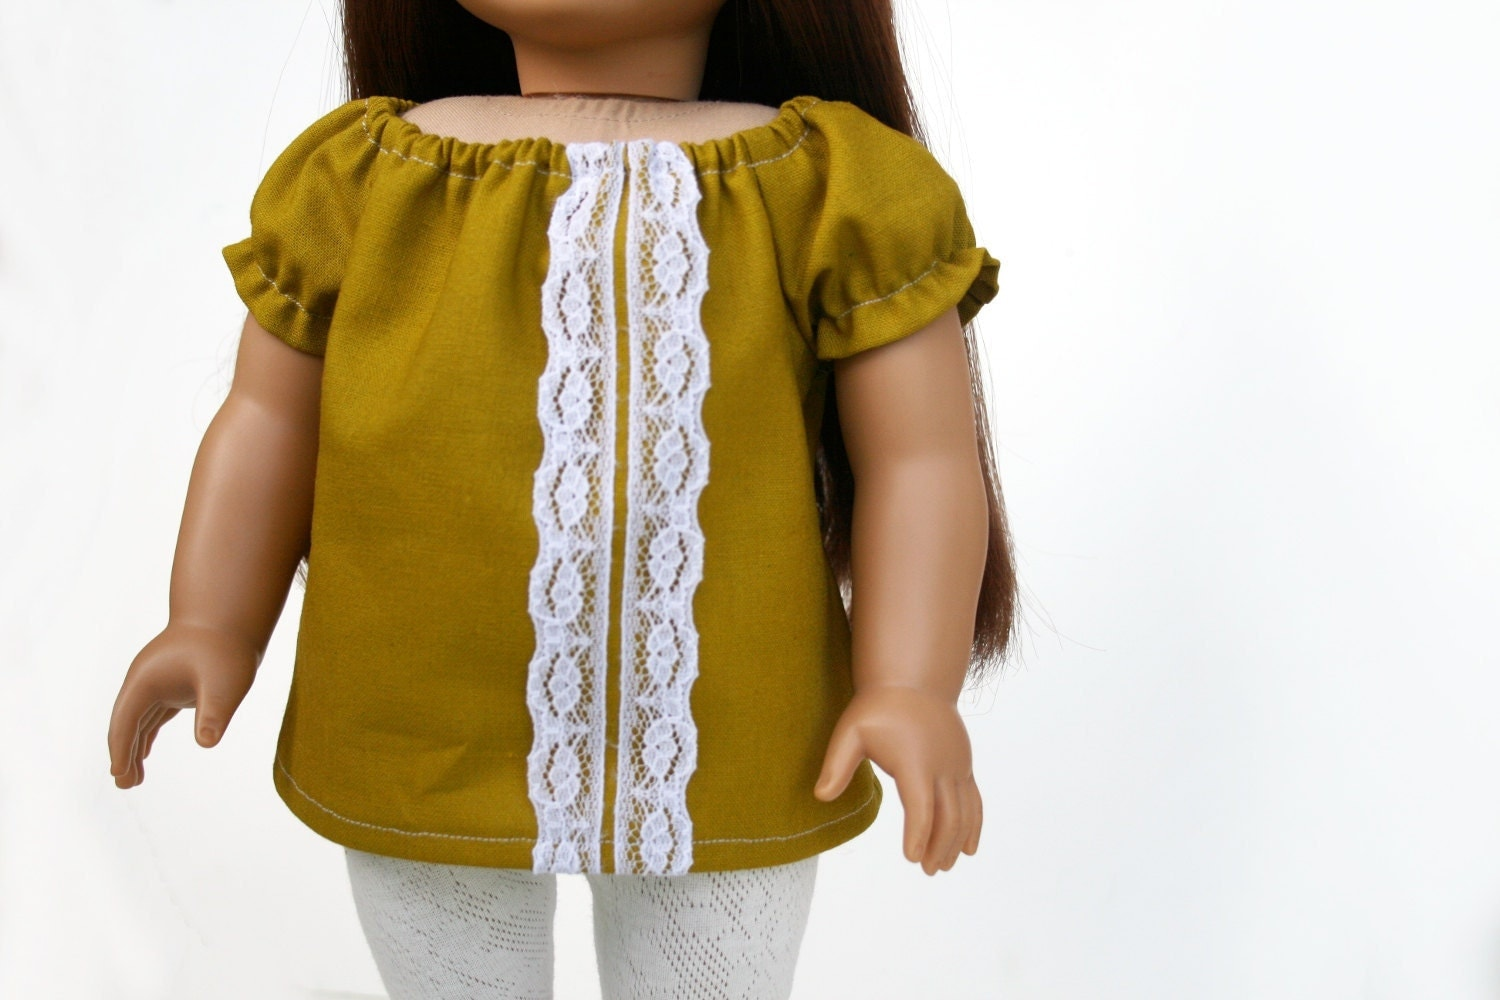 American Girl Doll Clothes - A Peasant Top in Echino Green, Made To Order